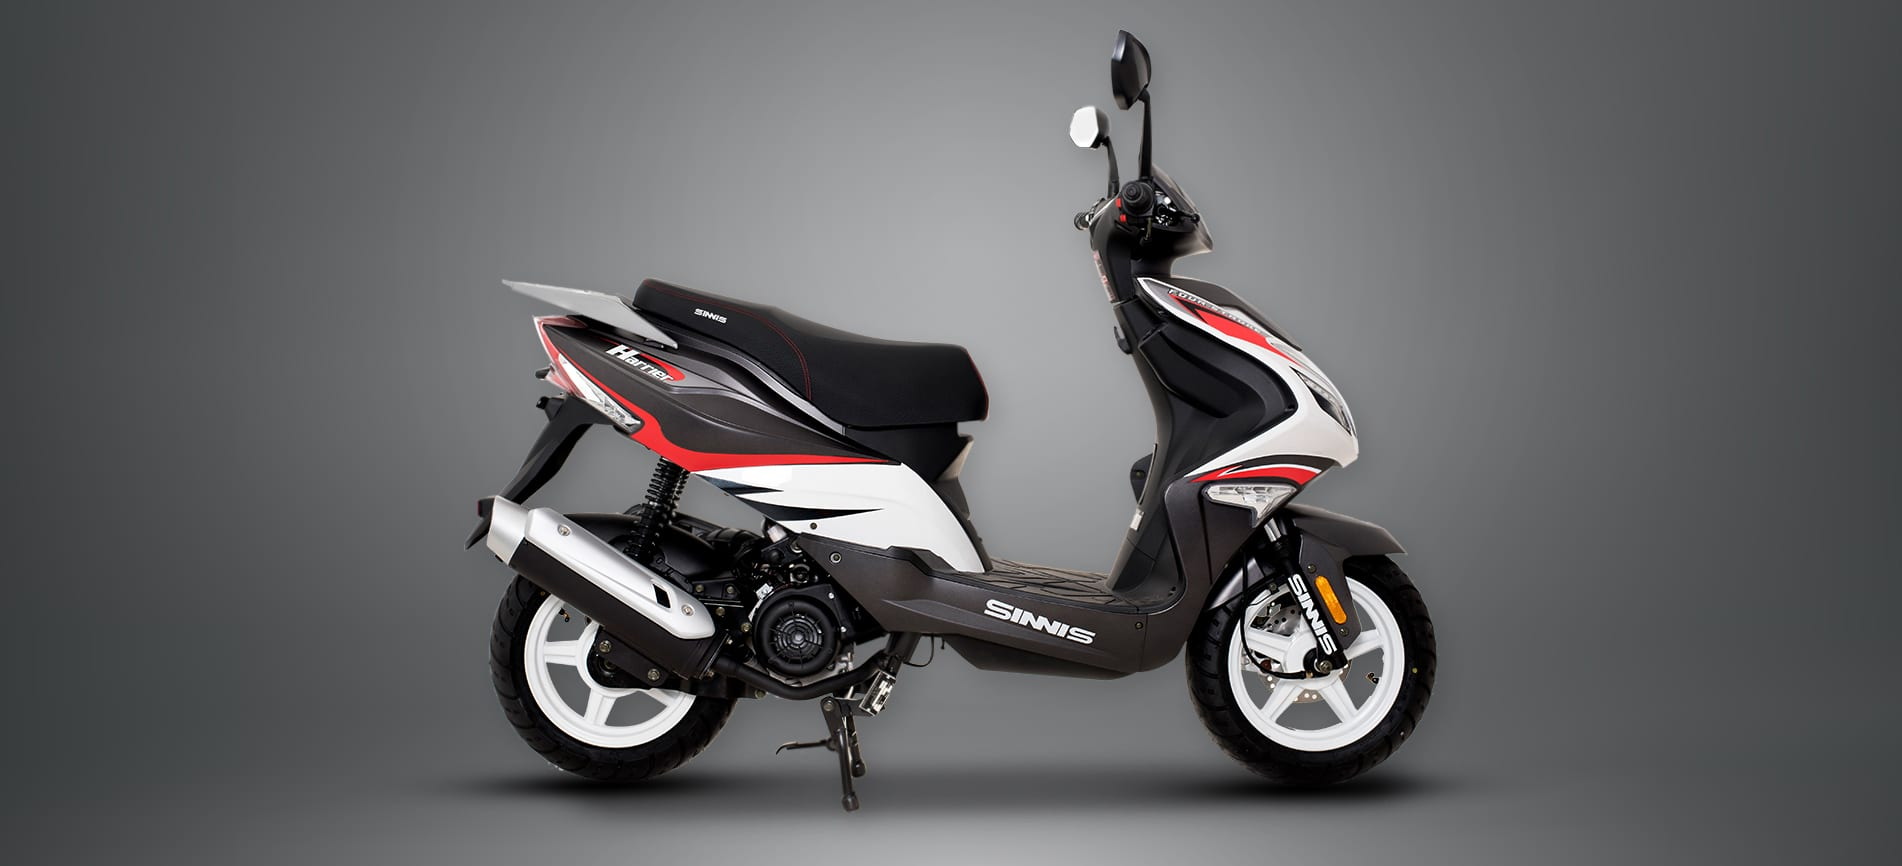 Sinnis Harrier 125cc Scooter Moped black and white and red